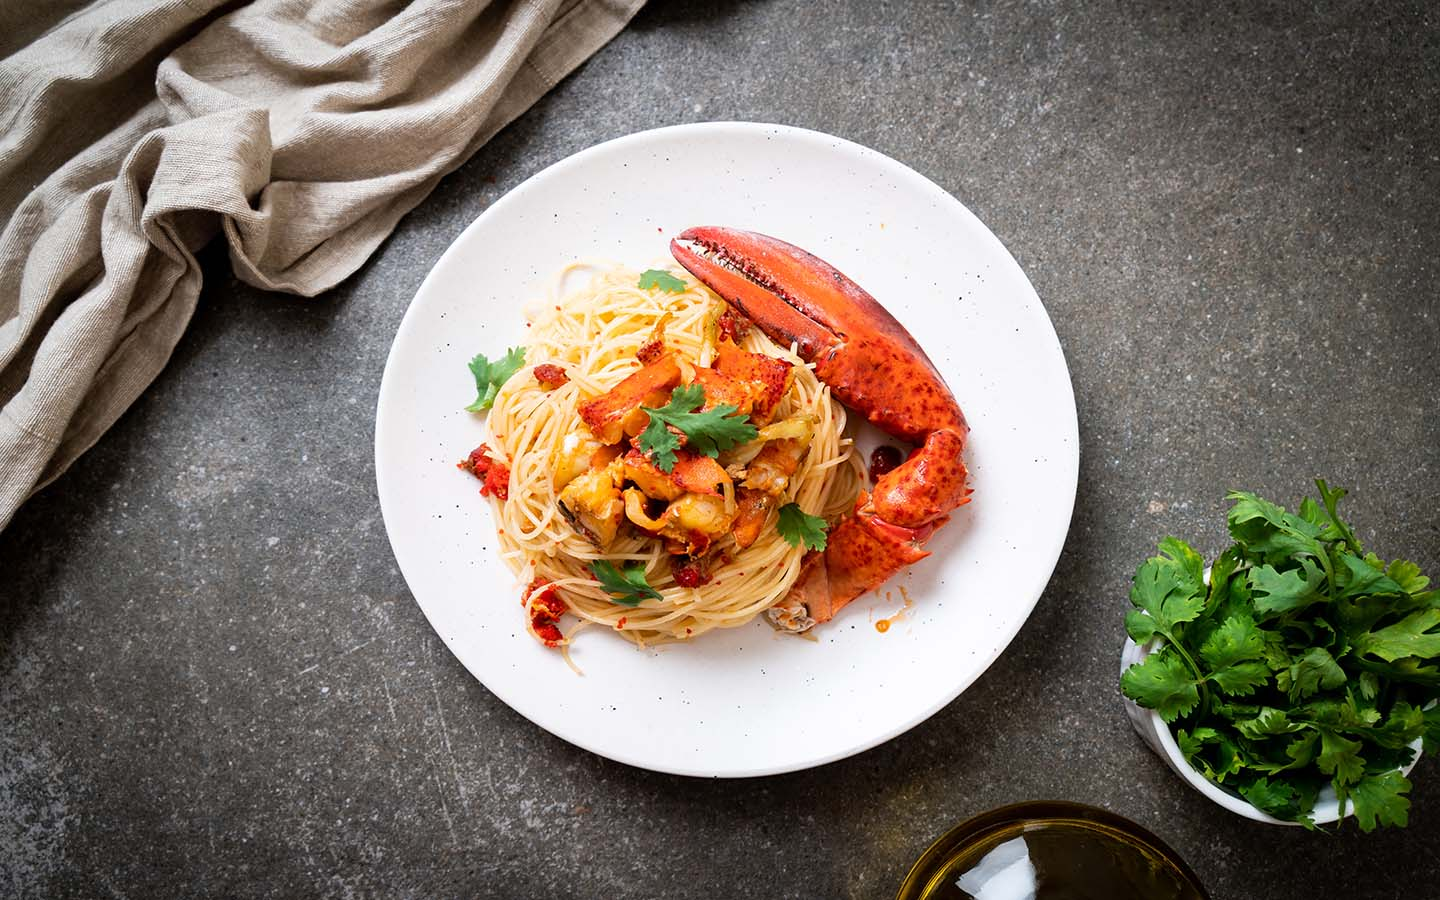 Italian Pasta with shrimps and lobsters